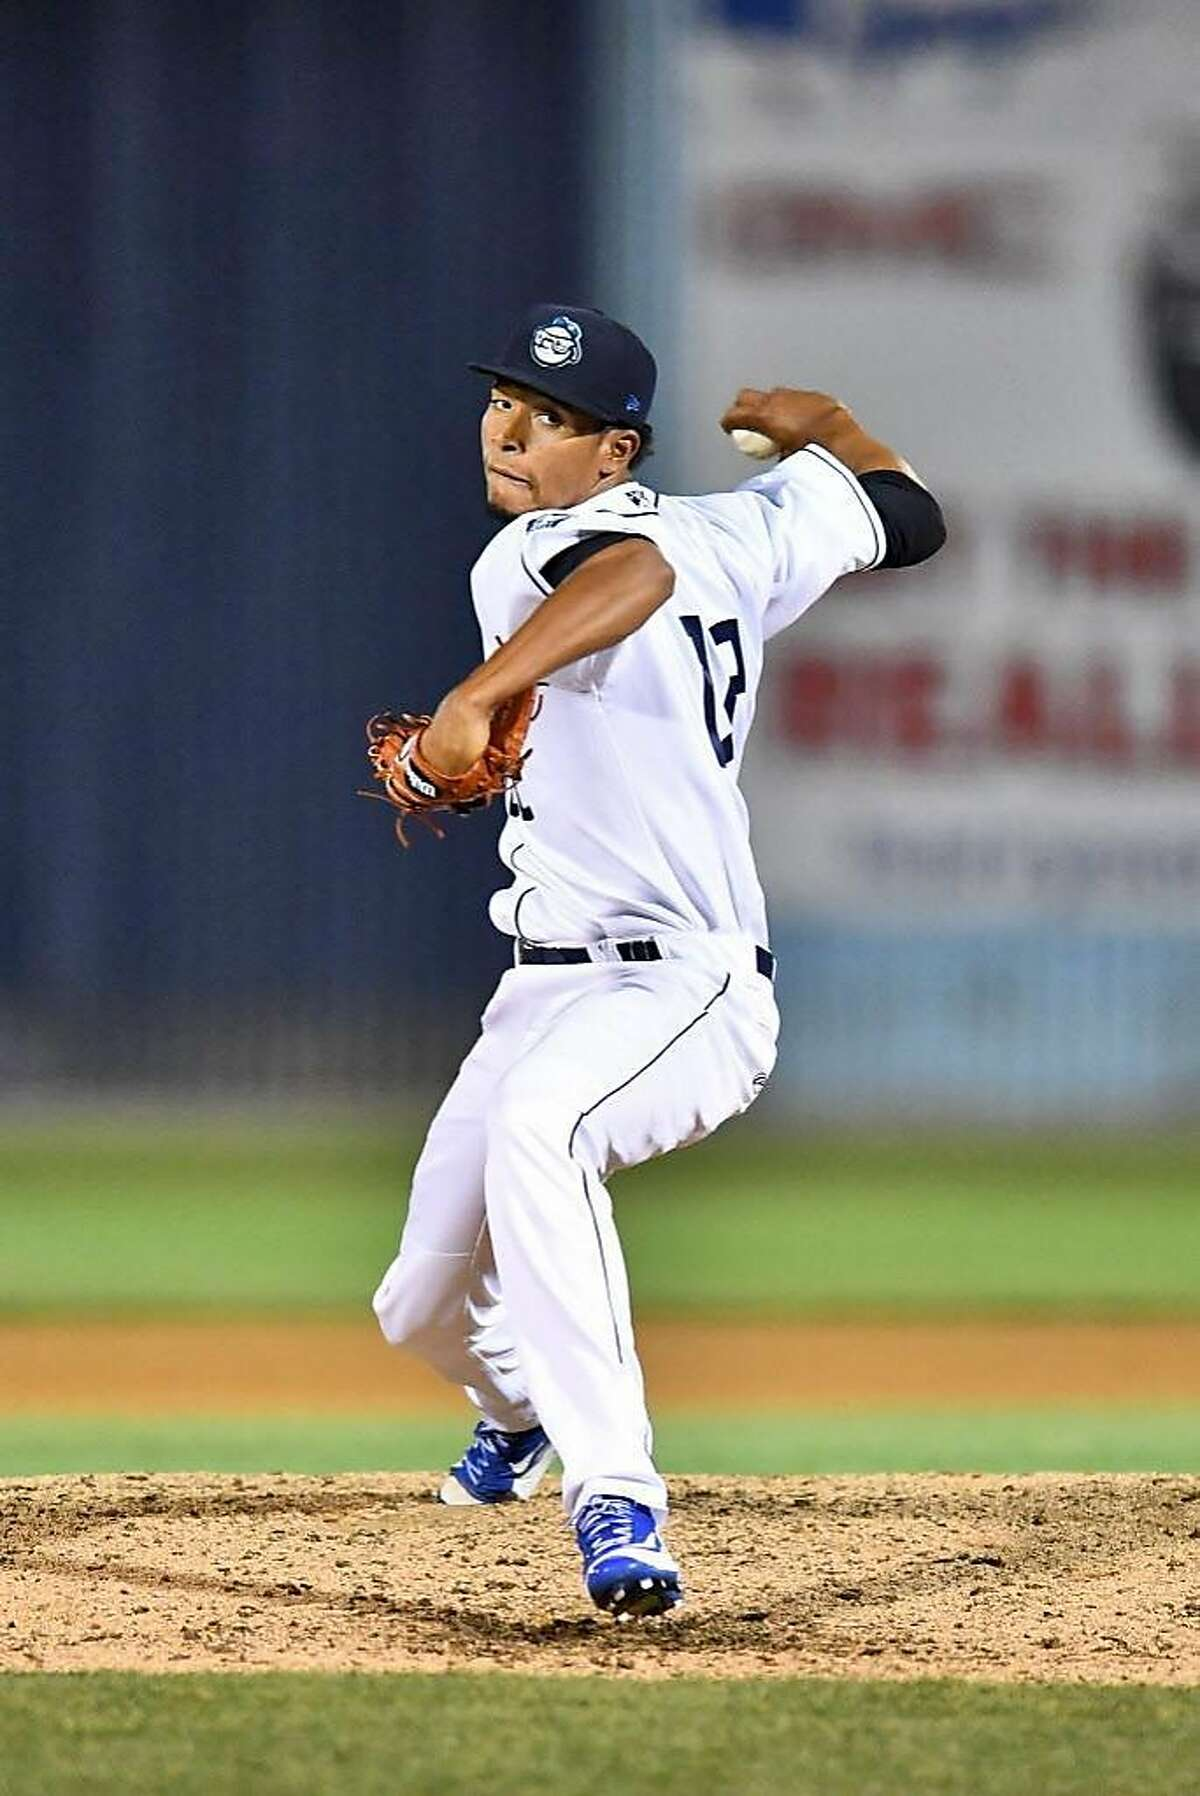 Asheville Tourists pitcher Julian Fernandez (22) delivers a pitch during a game against the Greensboro Grasshoppers at McCormick Field on April 28, 2017 in Asheville, North Carolina. The former Rockies prospect was selected by the Giants in the Rule 5 draft.